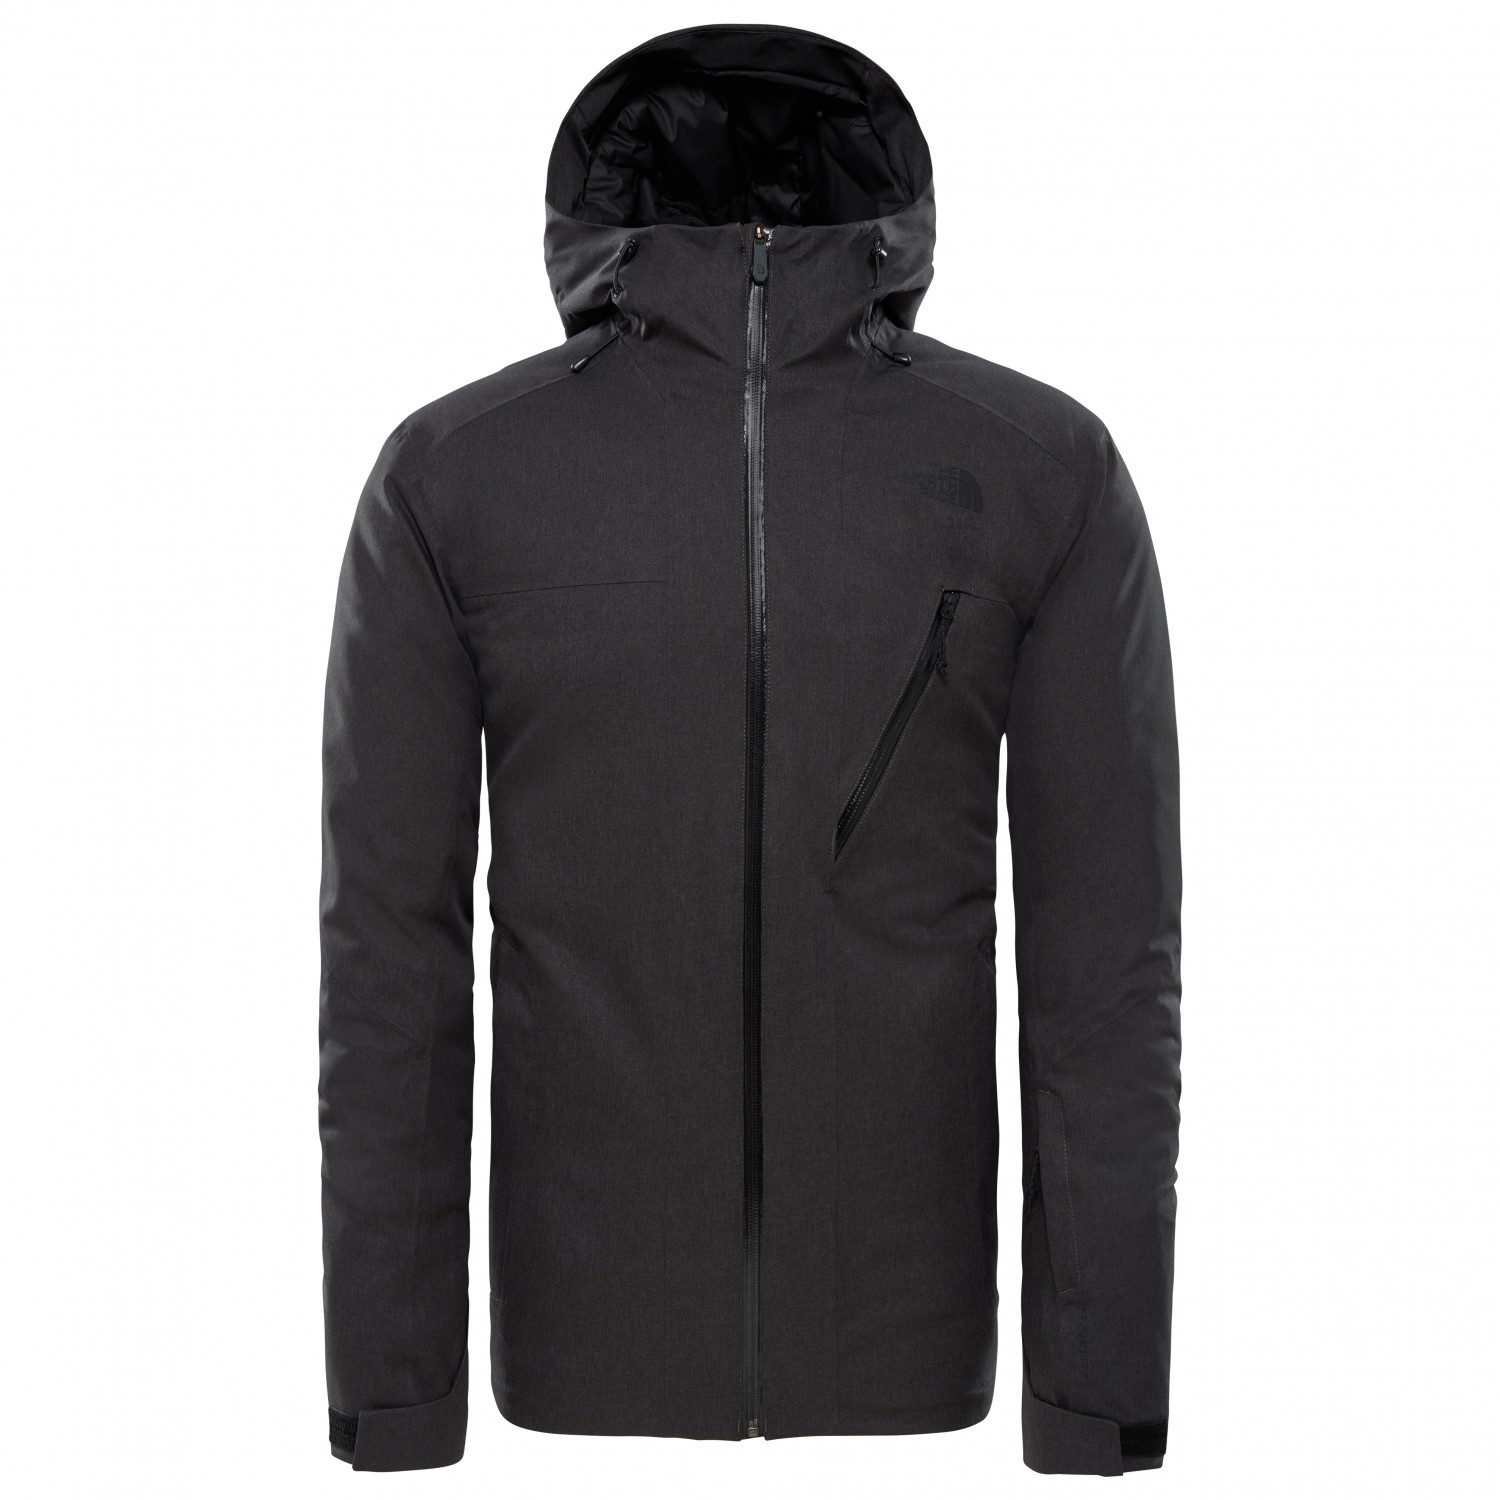 De Face Veste Jacket The North Descendit HommeLivraison Ski D9IEH2